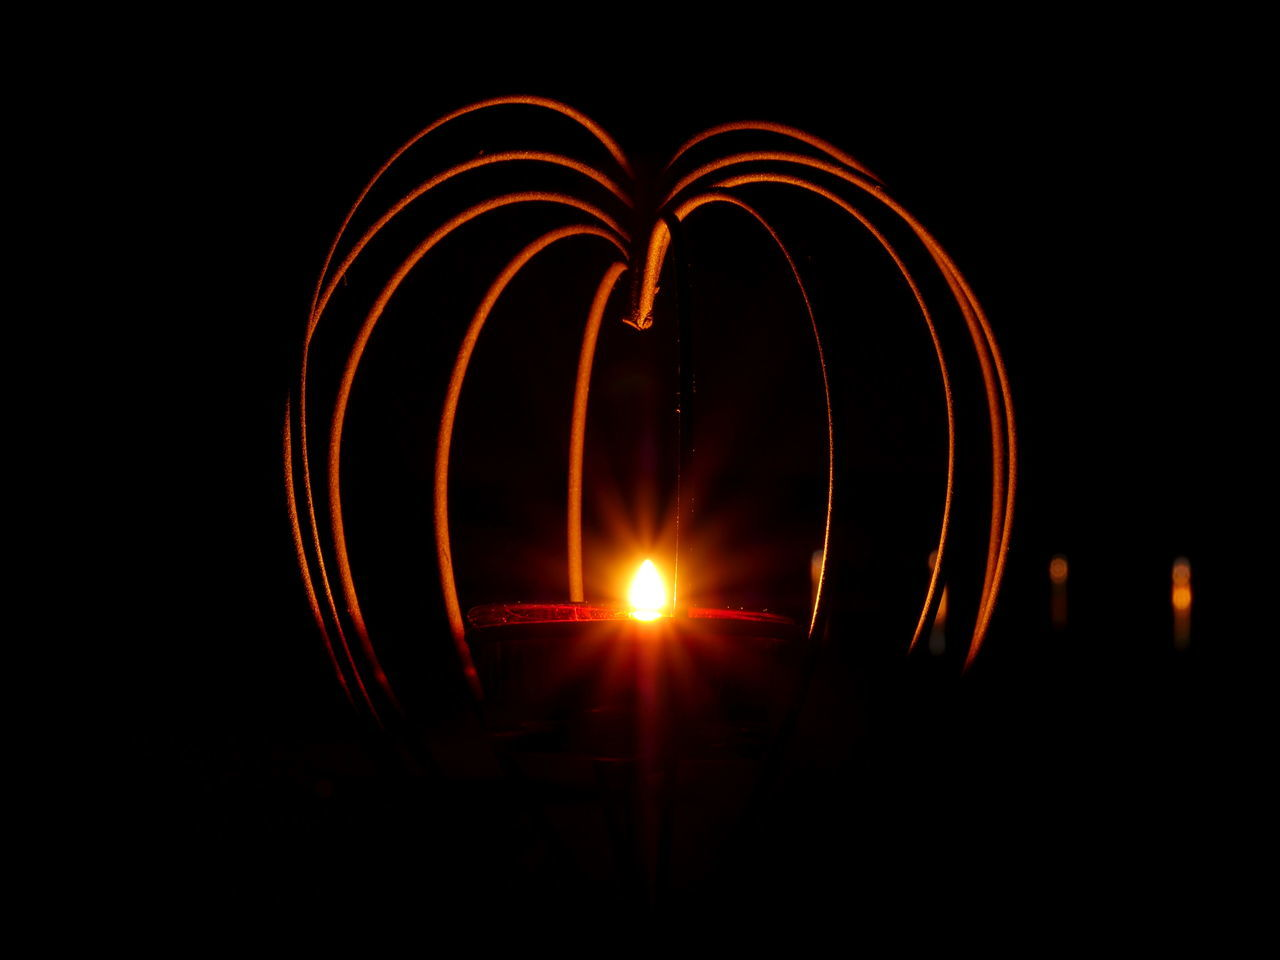 Abstract Black Background Candle Candle Flame Candle Light Darkness And Light Long Exposure Low Angle View Macro Night No People Wire Selective Focus Taking Photos Close-up From My Point Of View Close Up Flame At Home